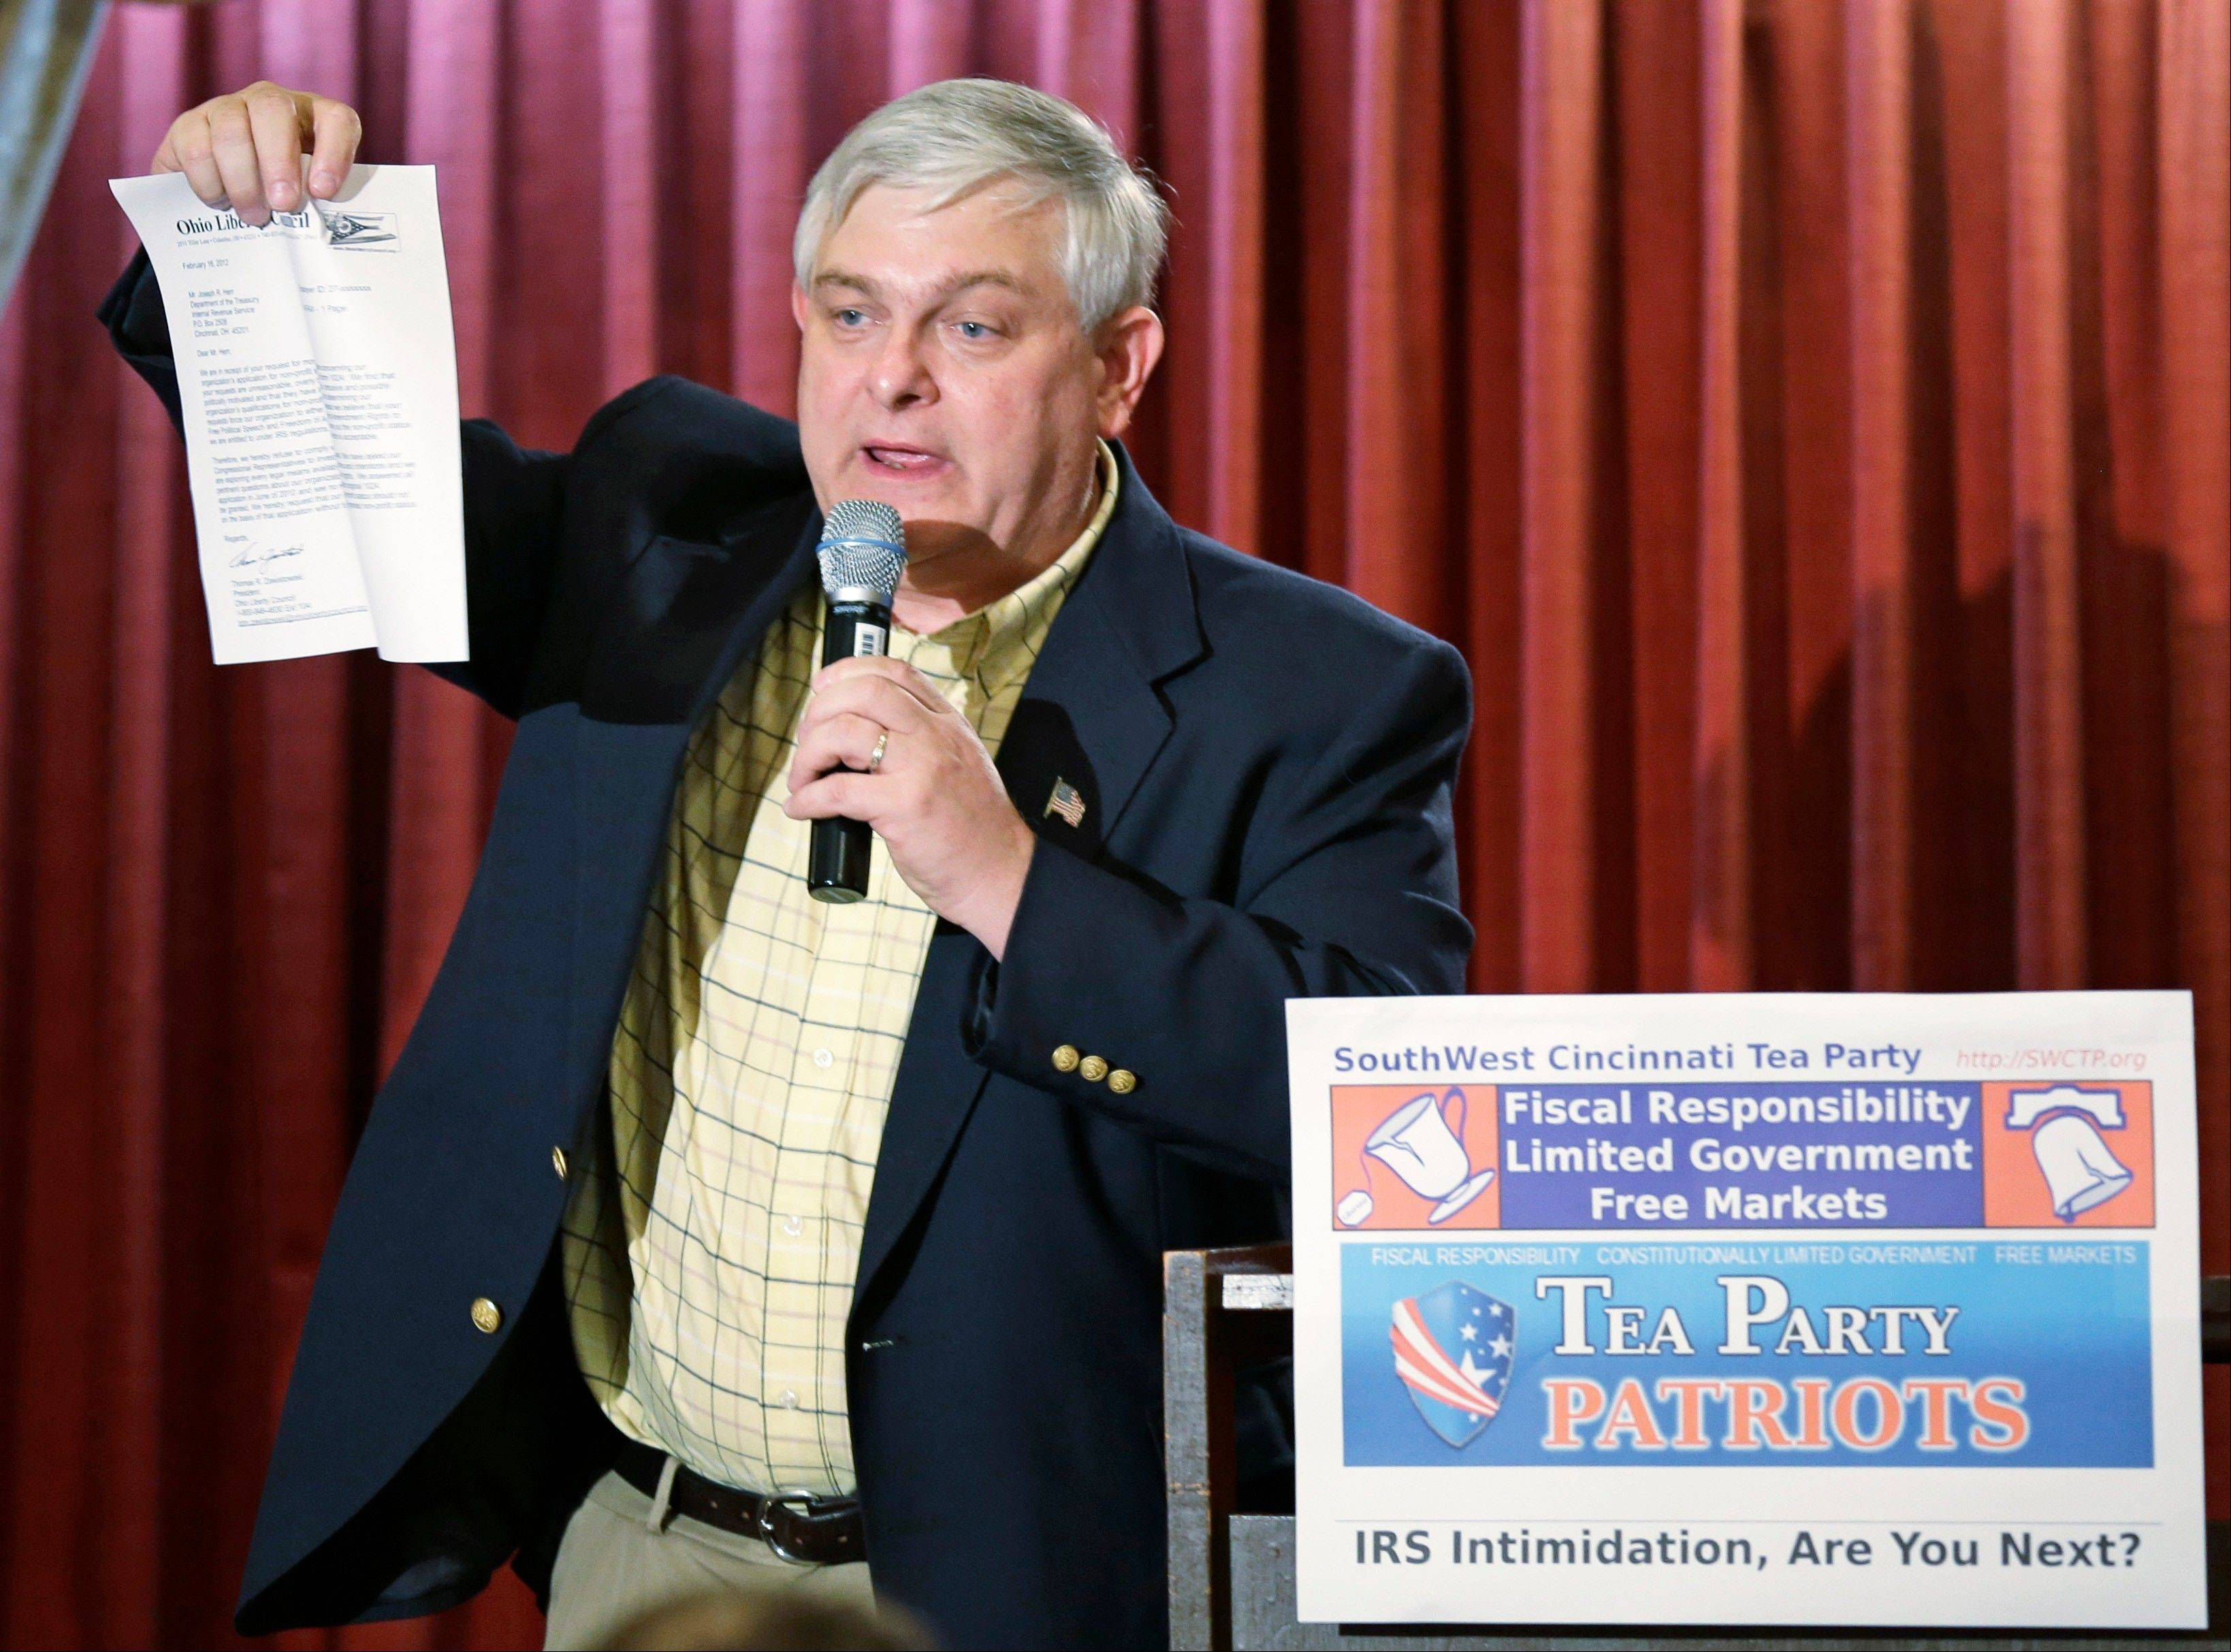 Tom Zawistowski, leader of the Portage County tea party in northeast Ohio, holds up a letter Wednesday he received from the IRS, while speaking at a gathering of tea party groups, in Cincinnati.